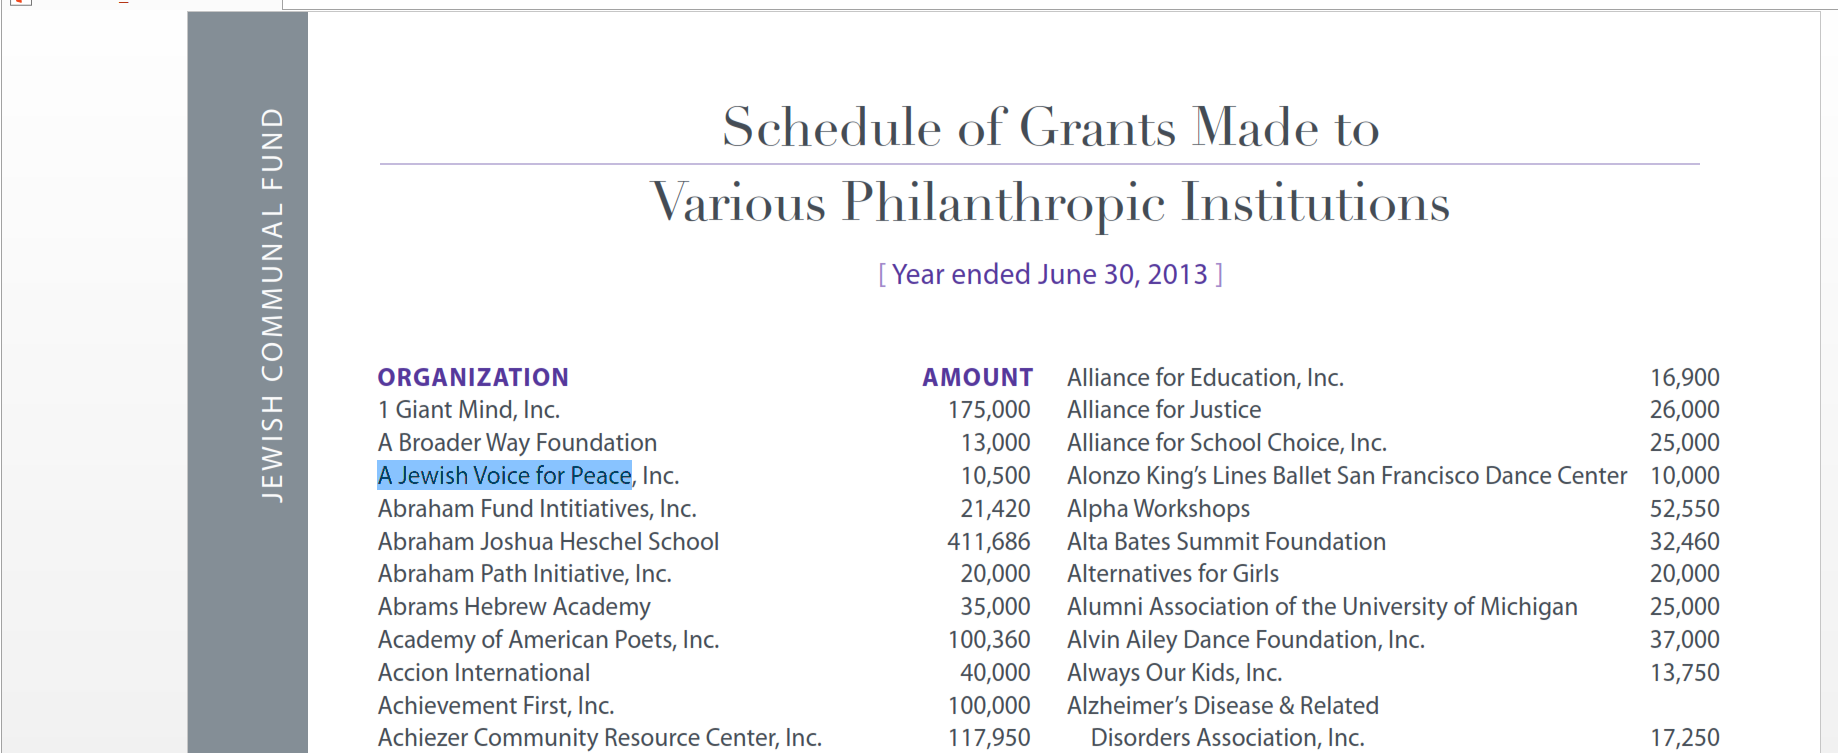 Jewish Communal Fund 2013 annual report showing donation to A Jewish Voice for Peace, on the Anti-Defamation League's Top 10 Anti-Israel groups.